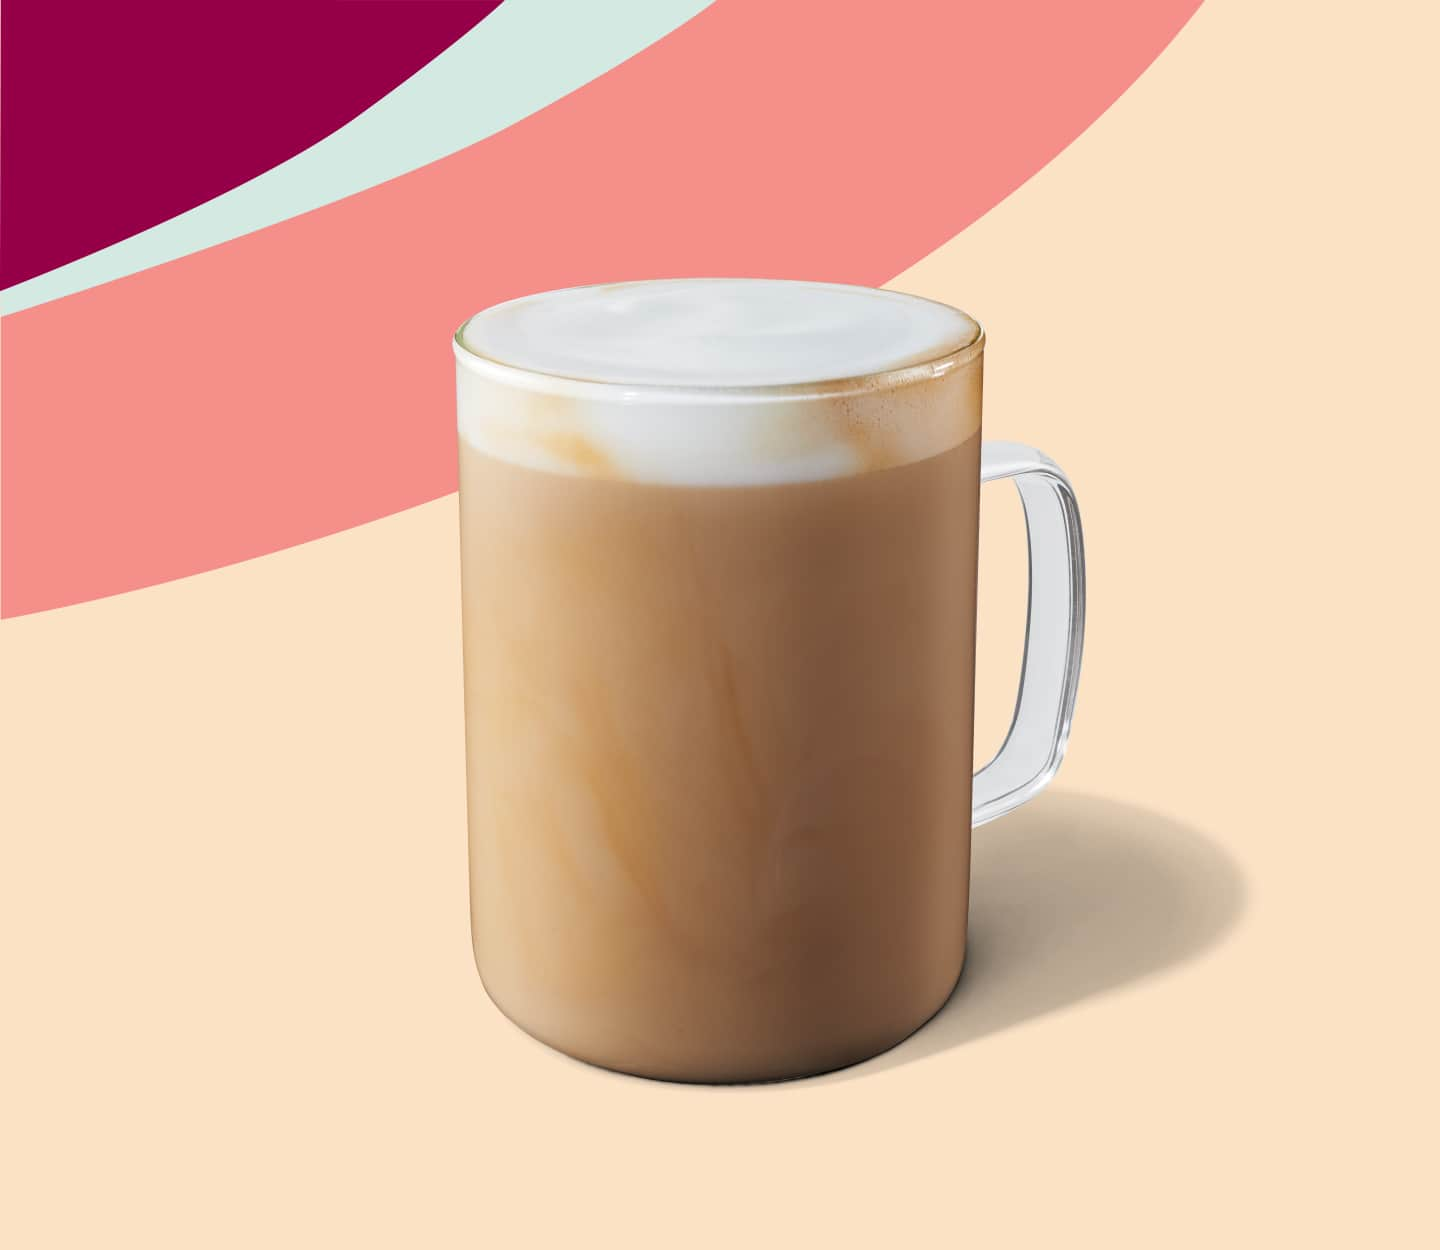 A creamy latte served in a glass mug.